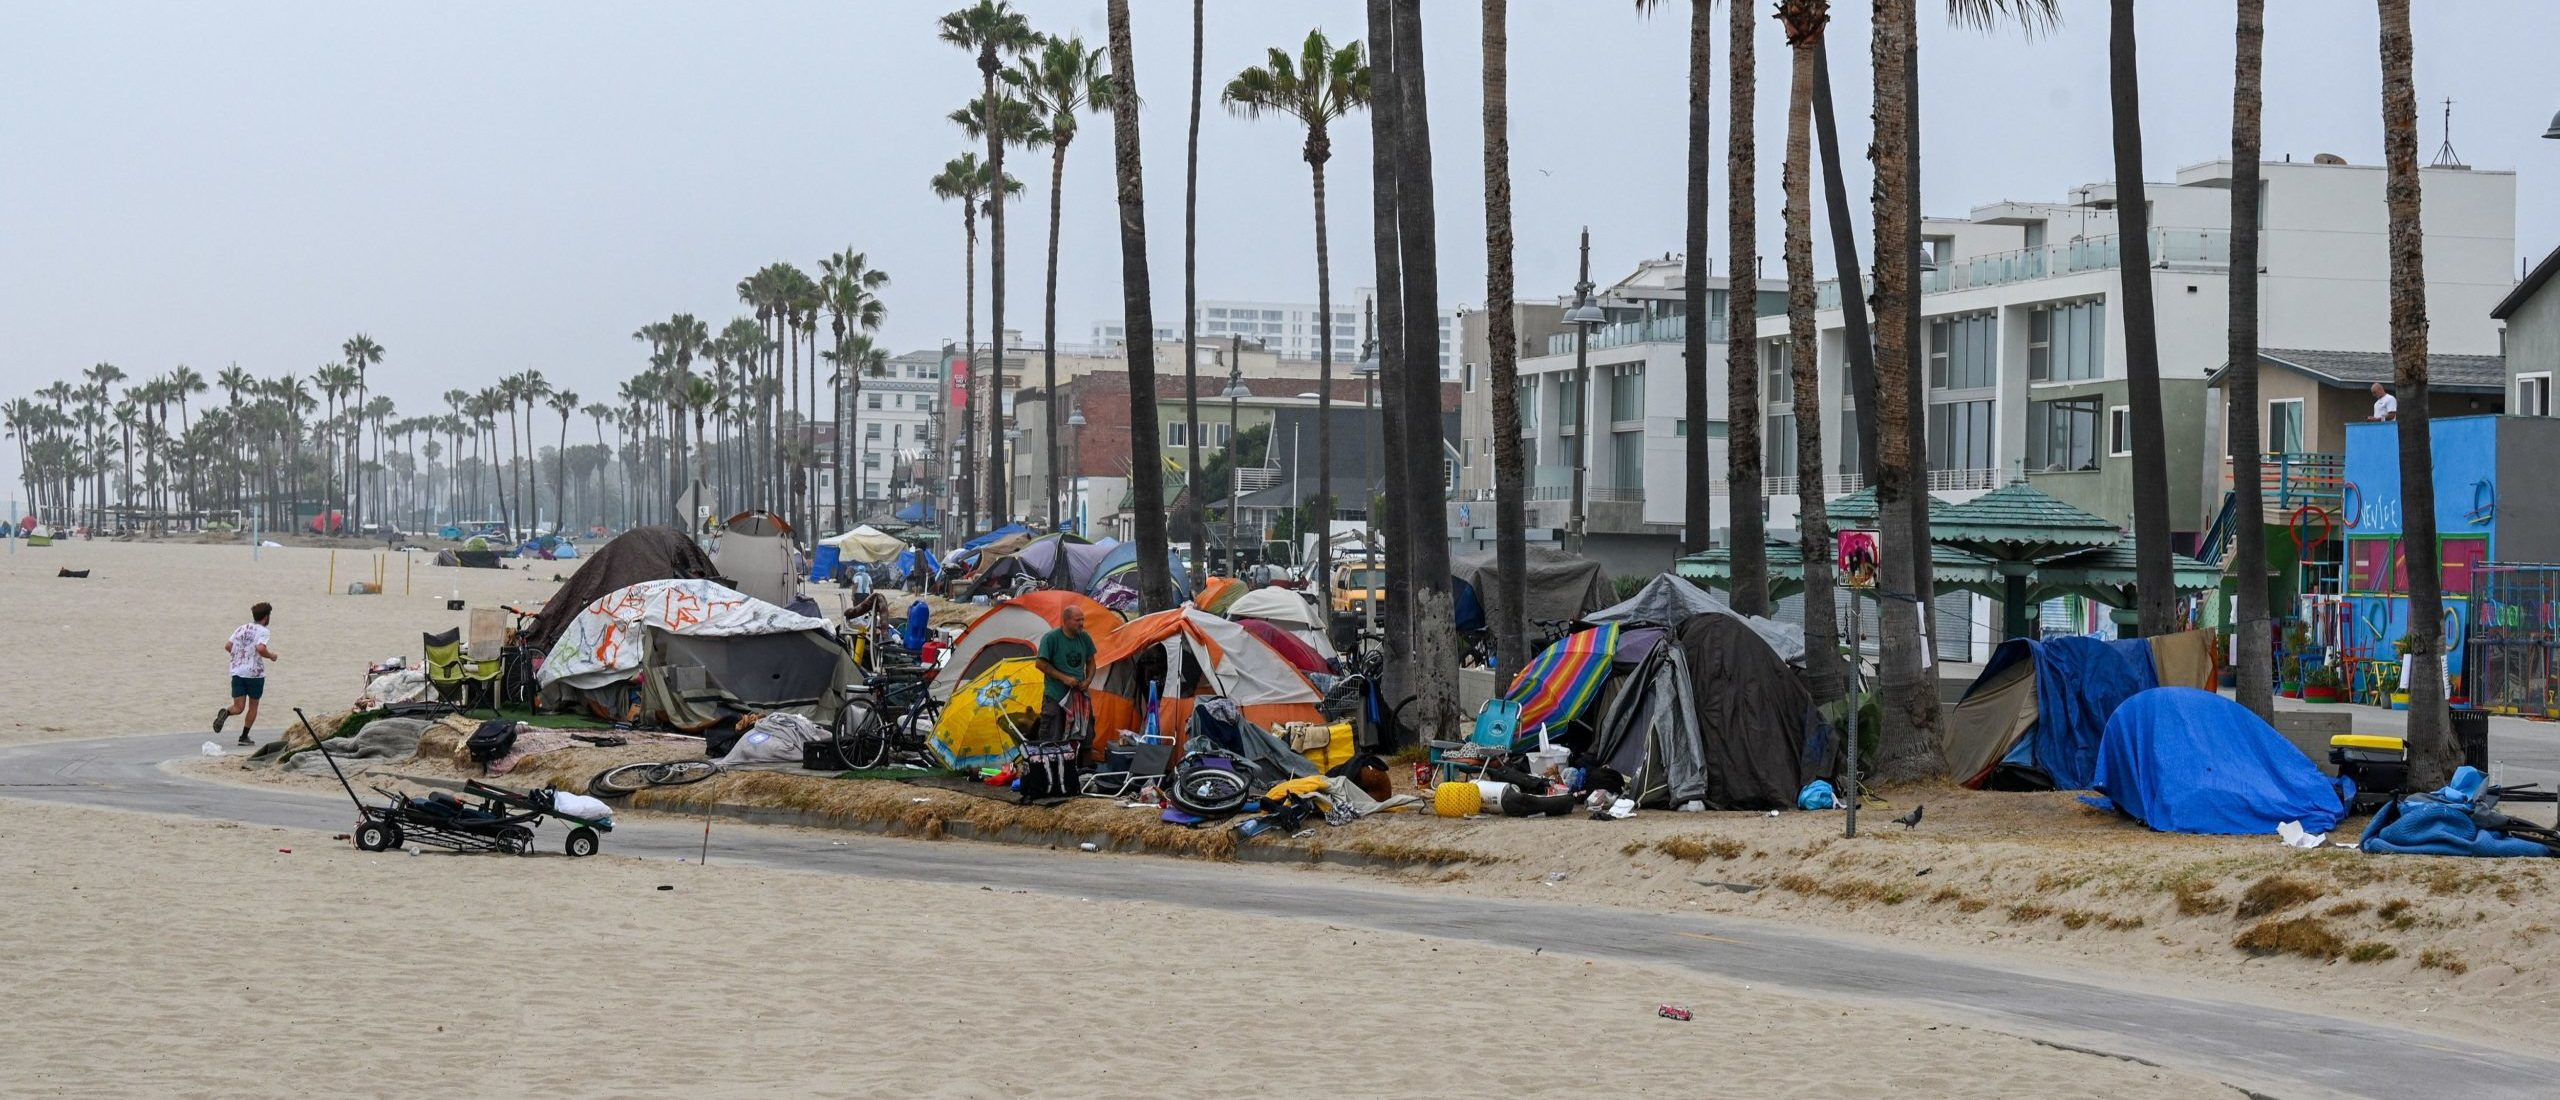 A man jogs along the beach as authorities prepare to begin clearing homeless encampments at the Venice Beach Boardwalk ahead of the Independence Day holiday weekend, July 2, 2021 in Los Angeles, California. (Photo by ROBYN BECK/AFP via Getty Images)